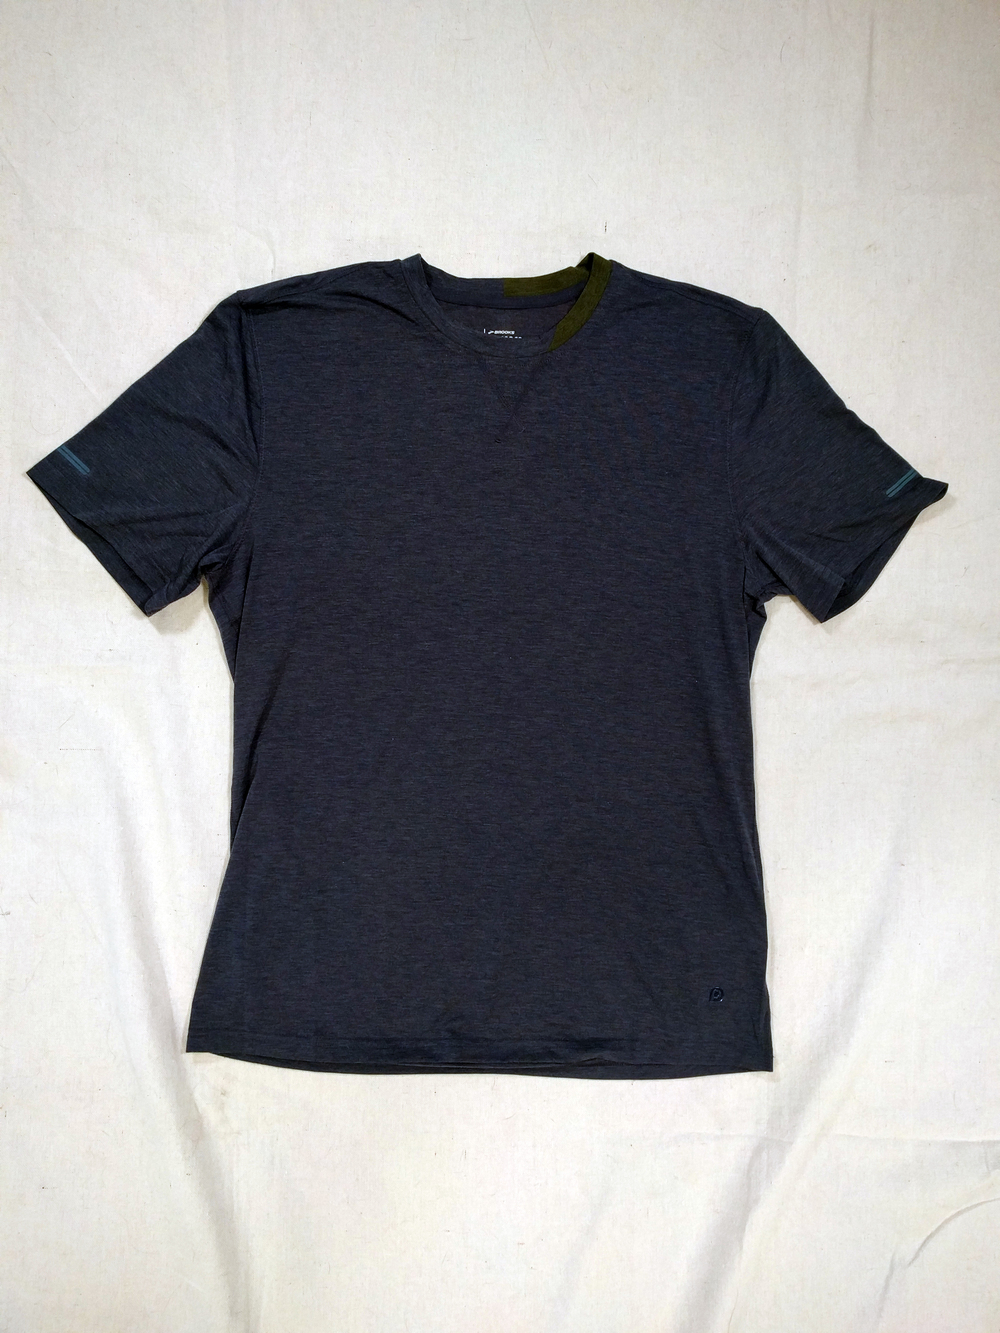 Nate Blue t shirt.jpg